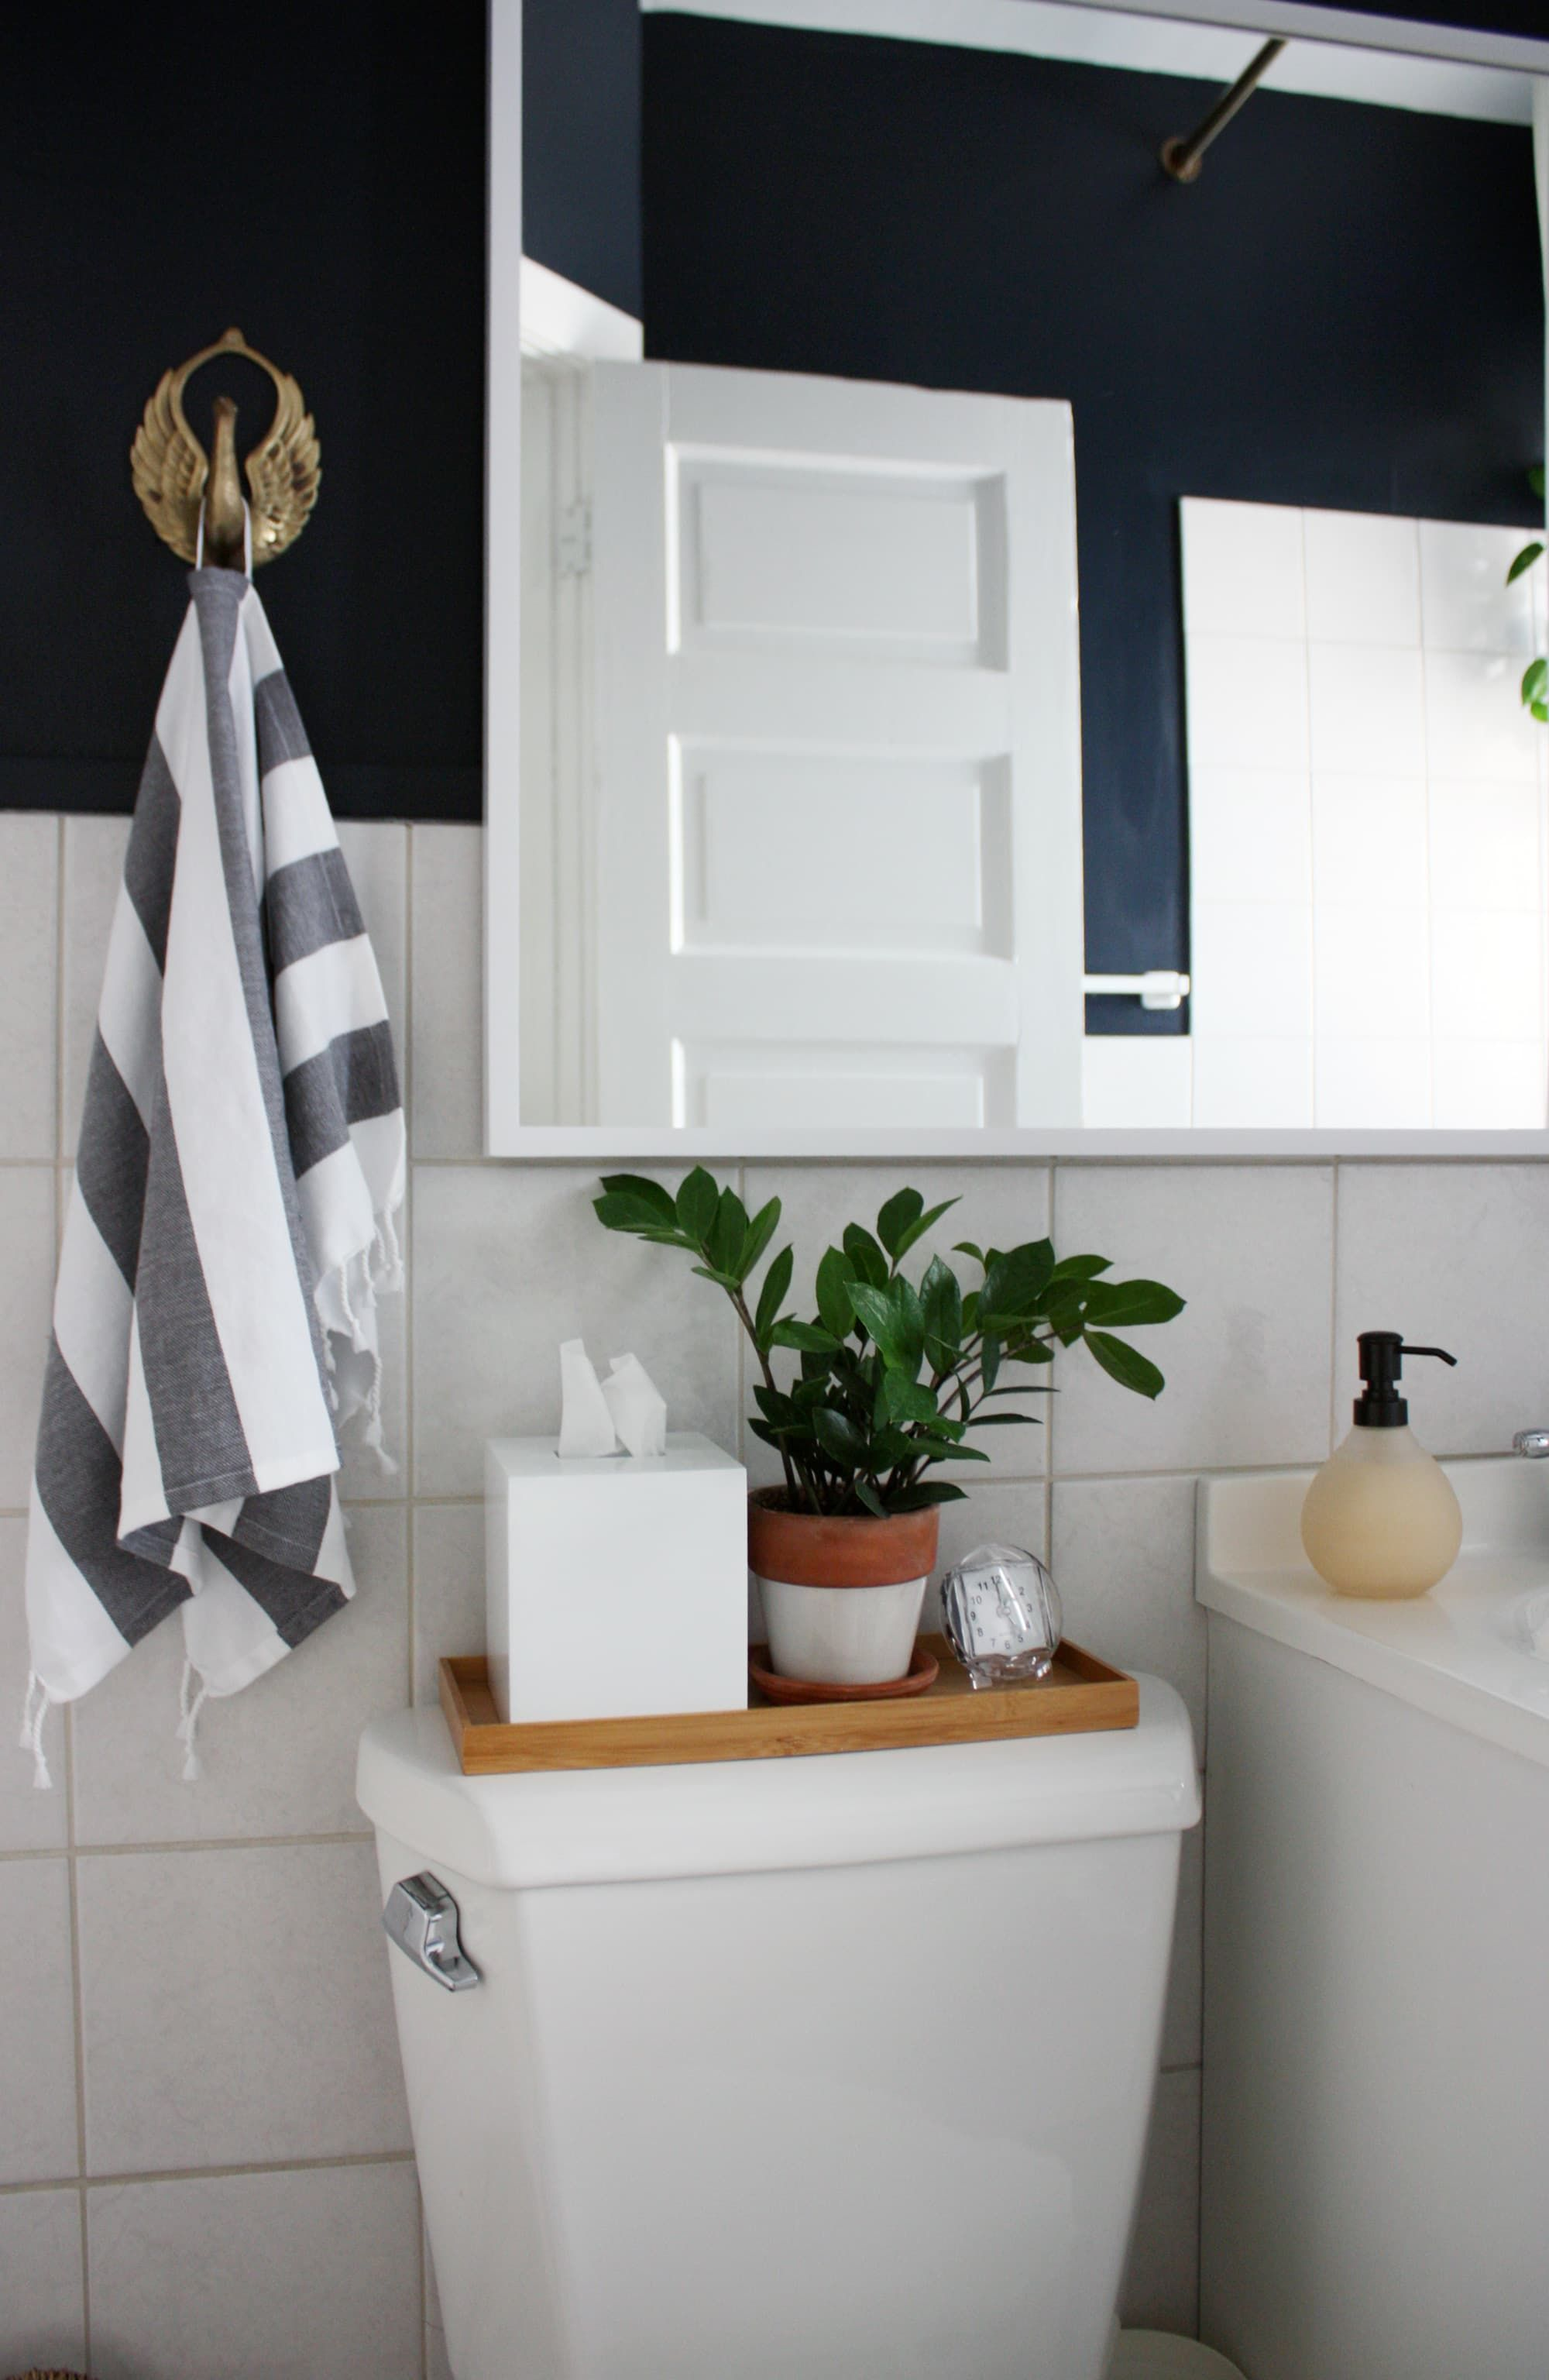 Inexpensive Bathroom Upgrades To Improve Your Home\'s Value | Rental ...